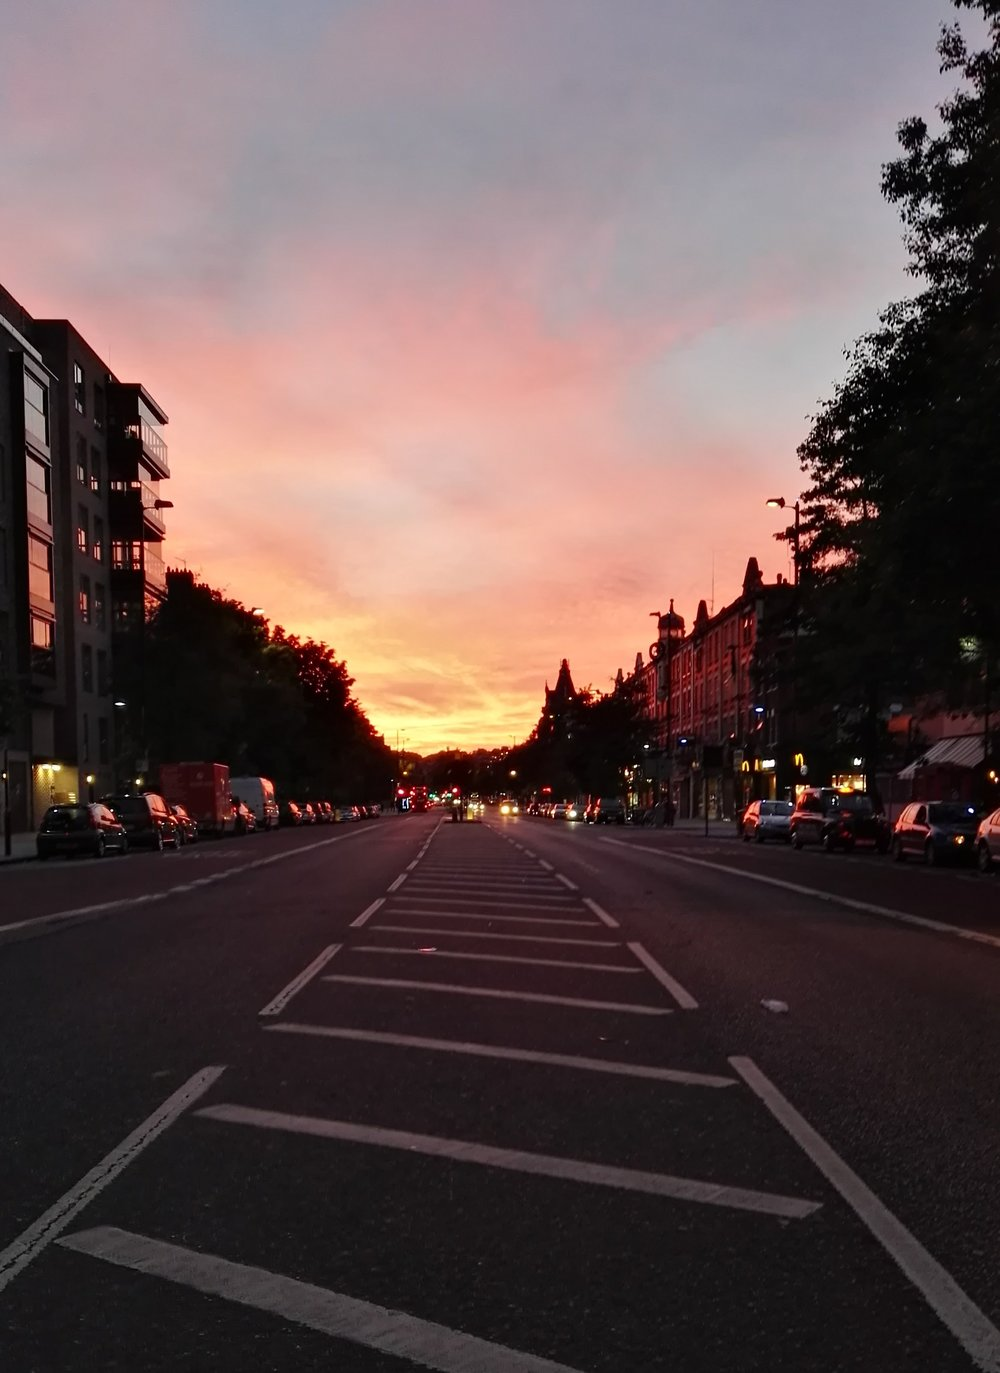 Serene sunset down Holloway Road. All was well that evening at last.